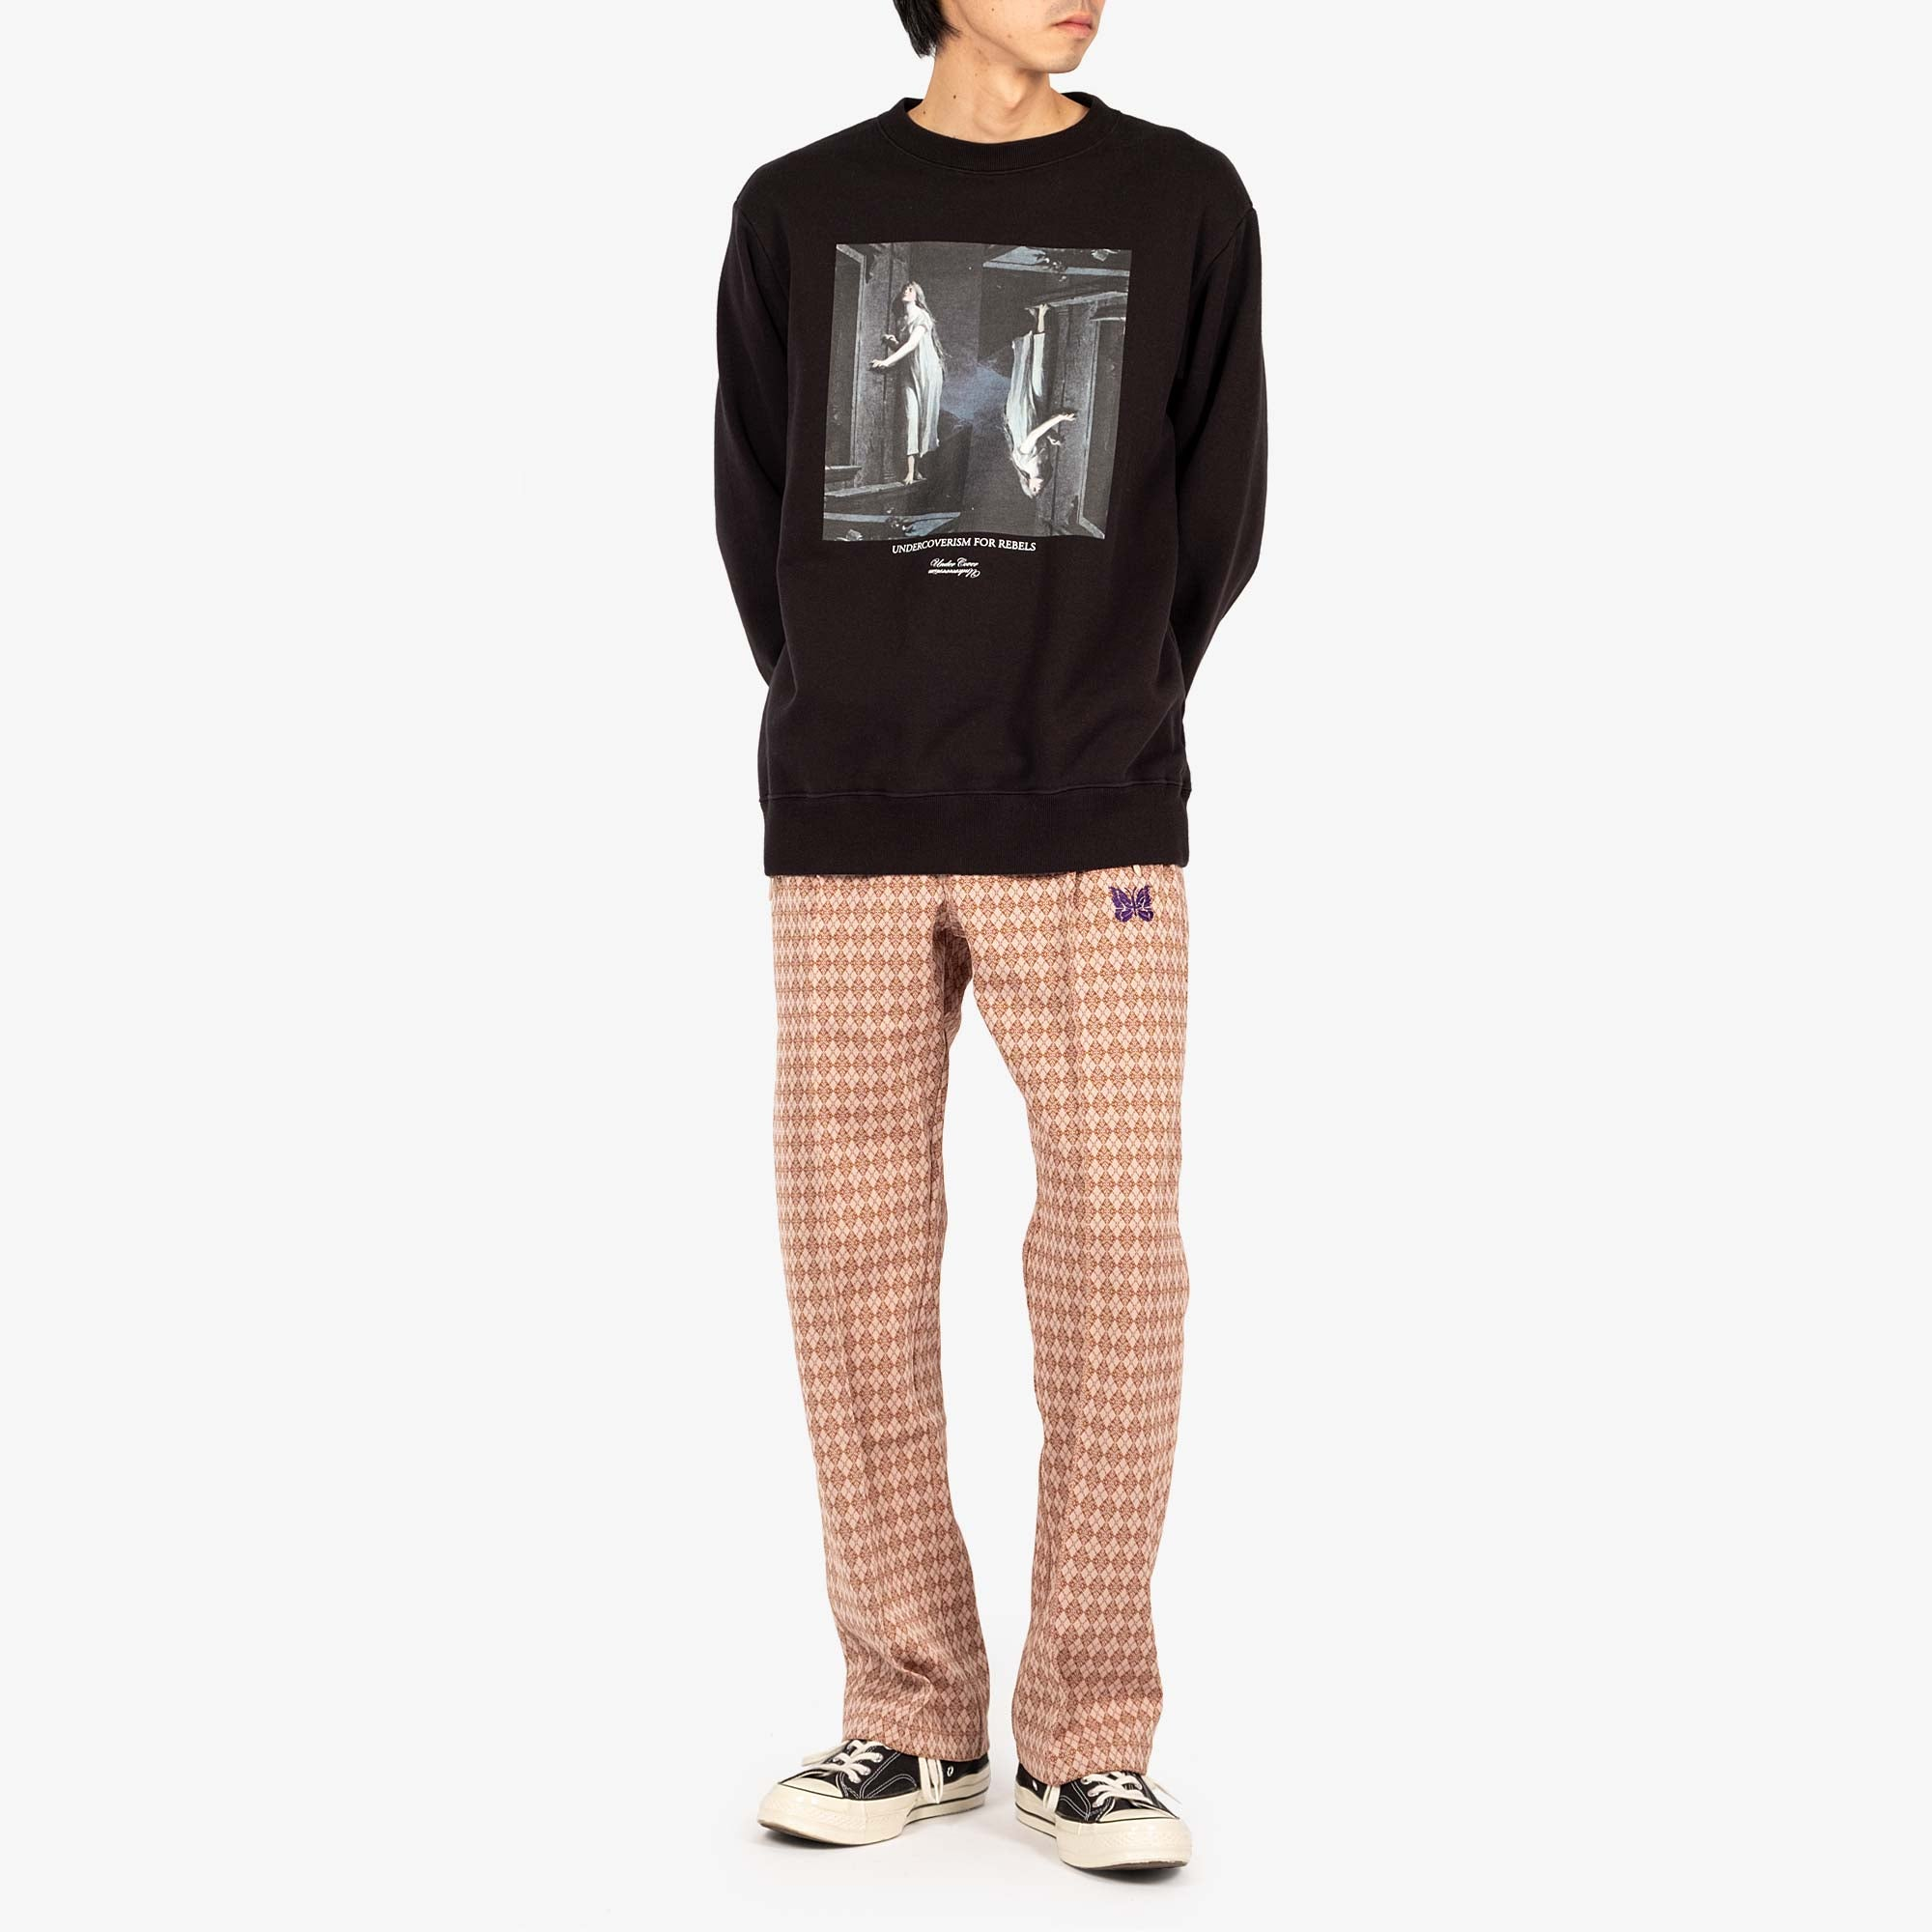 Undercover Painting Sweat UC2A4893-2 - Black 3